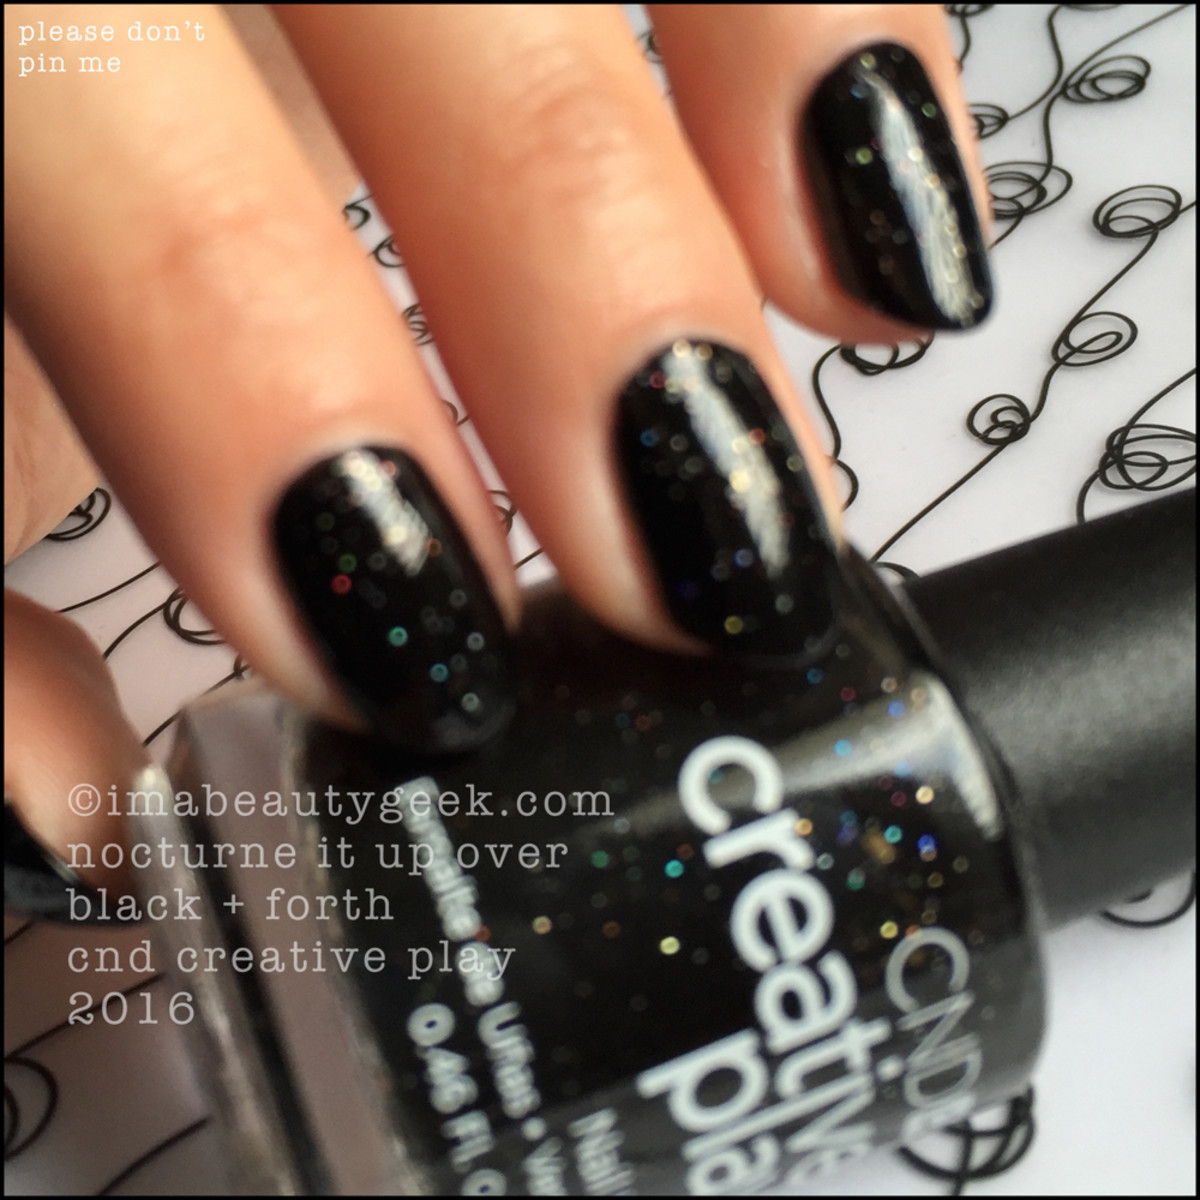 CND Creative Play Nocturne it Up Fuzzy